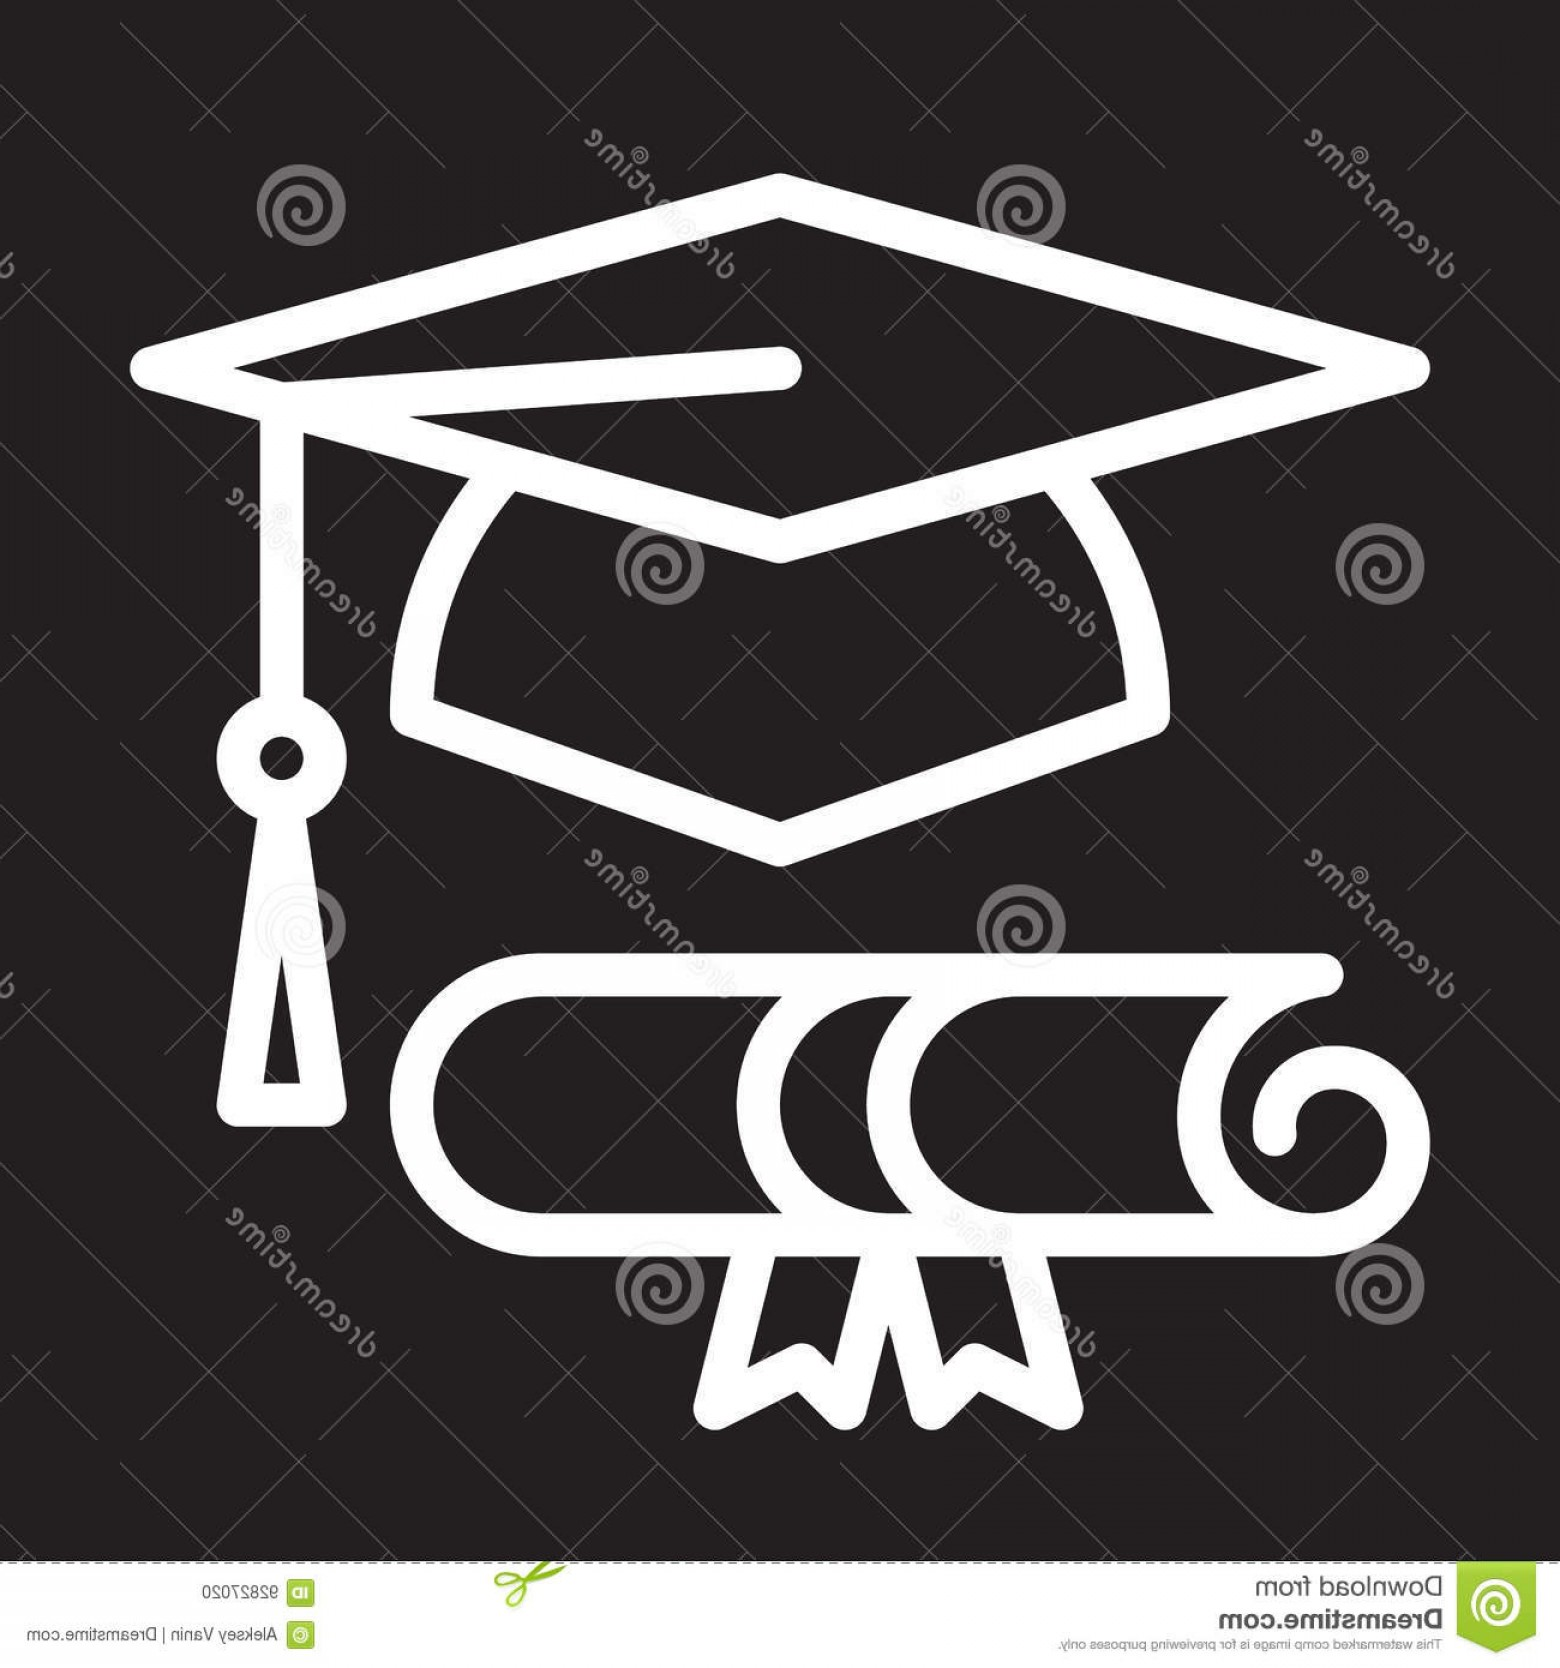 Diploma Icon Vector: Stock Illustration Graduation Hat Diploma Line Icon White Outline Sign Vector Illustration Image